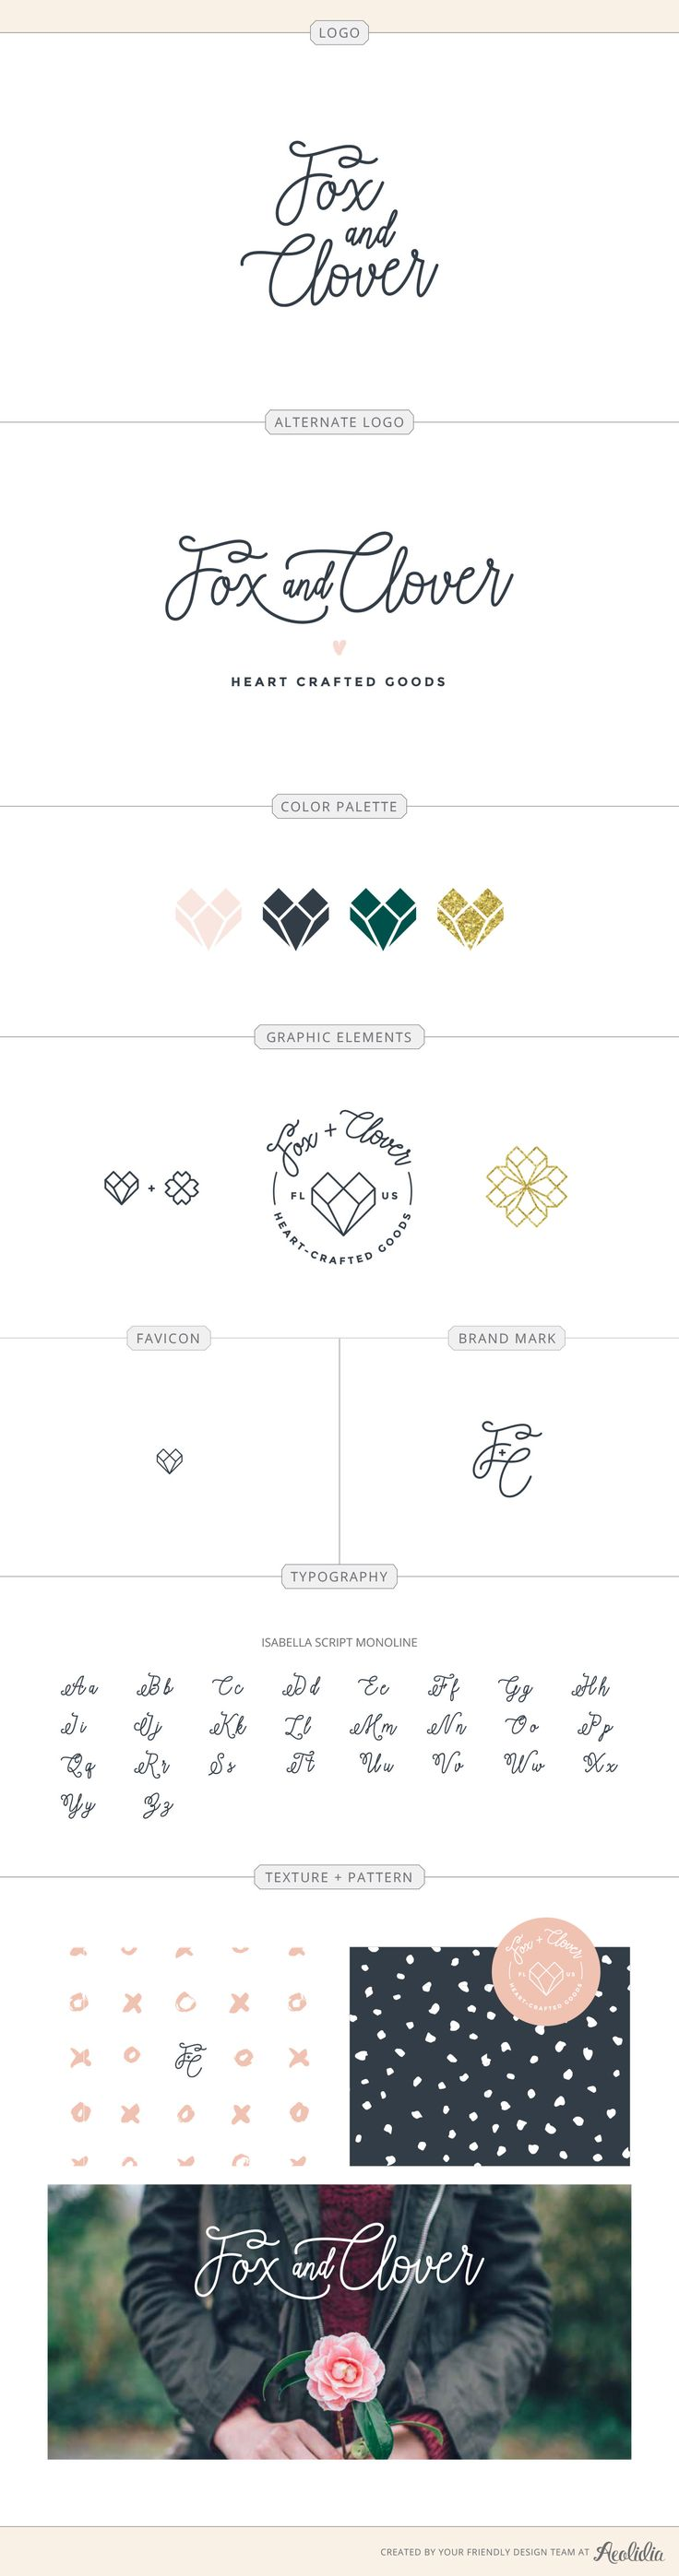 The Fox and Clover brand identity, designed by Aeolidia, is perfectly on trend, yet timeless.